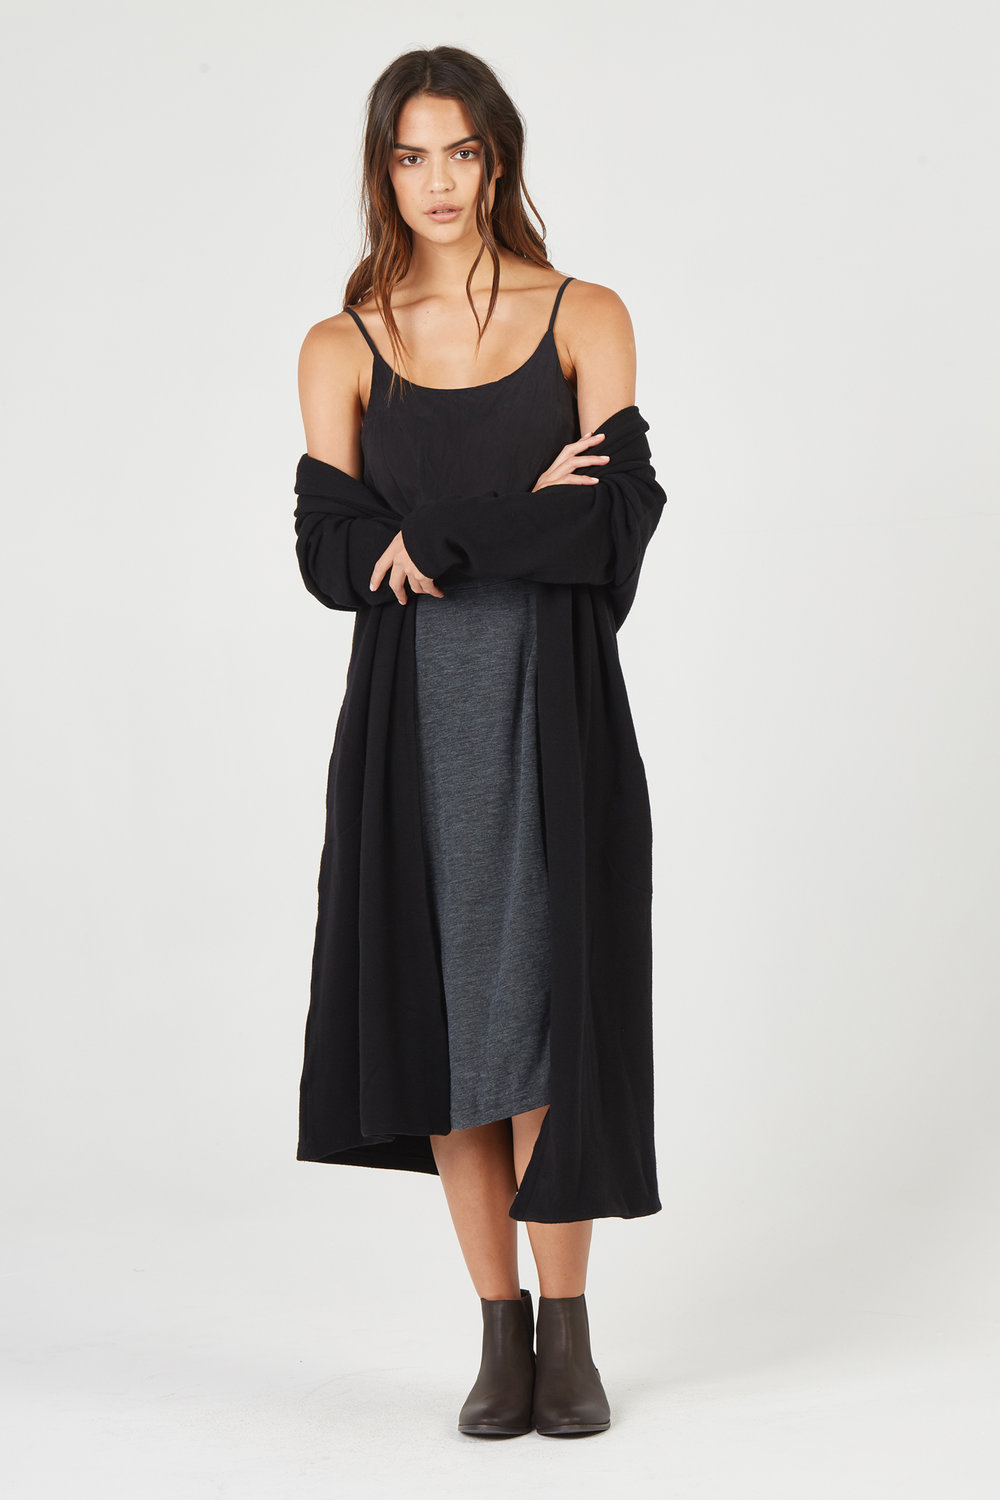 BIAS CAMI & LUXE JACKET NOIR. BOWIE SKIRT CHARCOAL